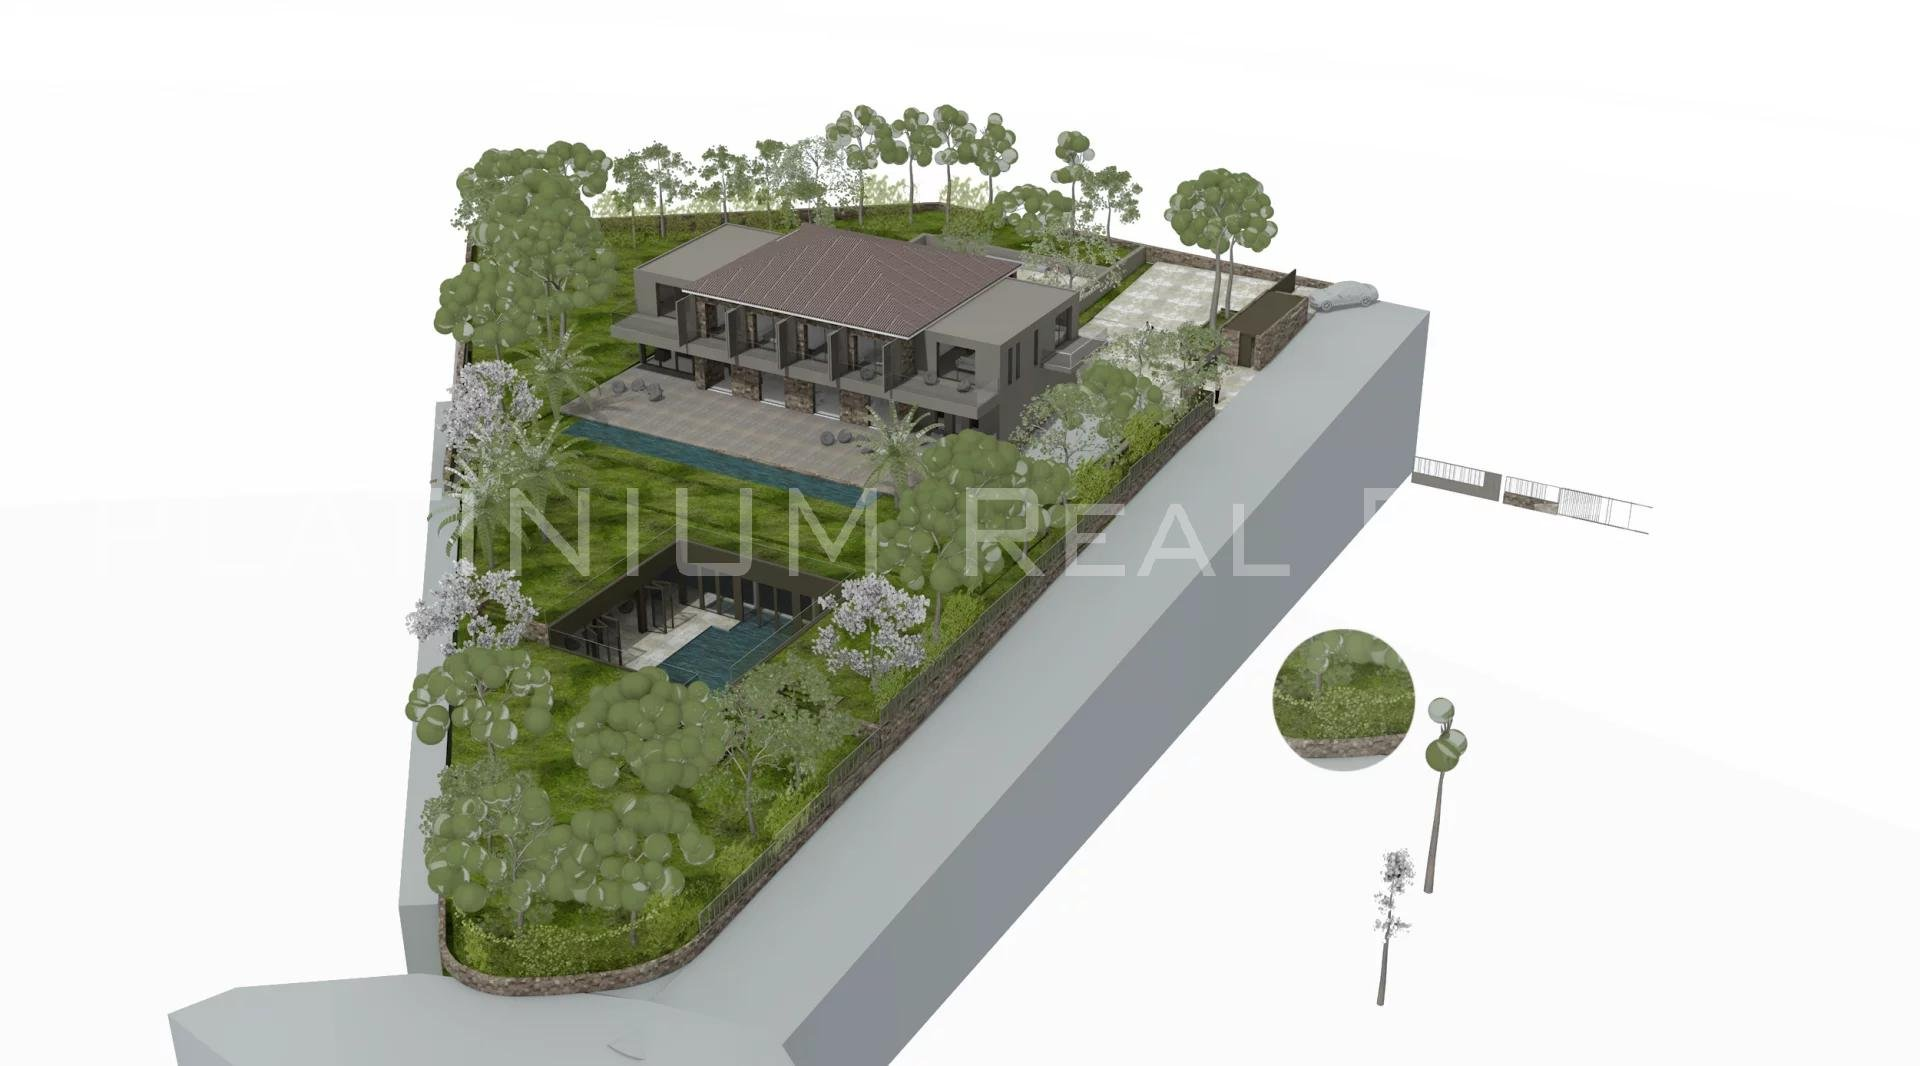 SAINT RAPHAEL - WATERFRONT LAND - 1.2 HECTARES - BUILDING PERMIT ACCEPTED